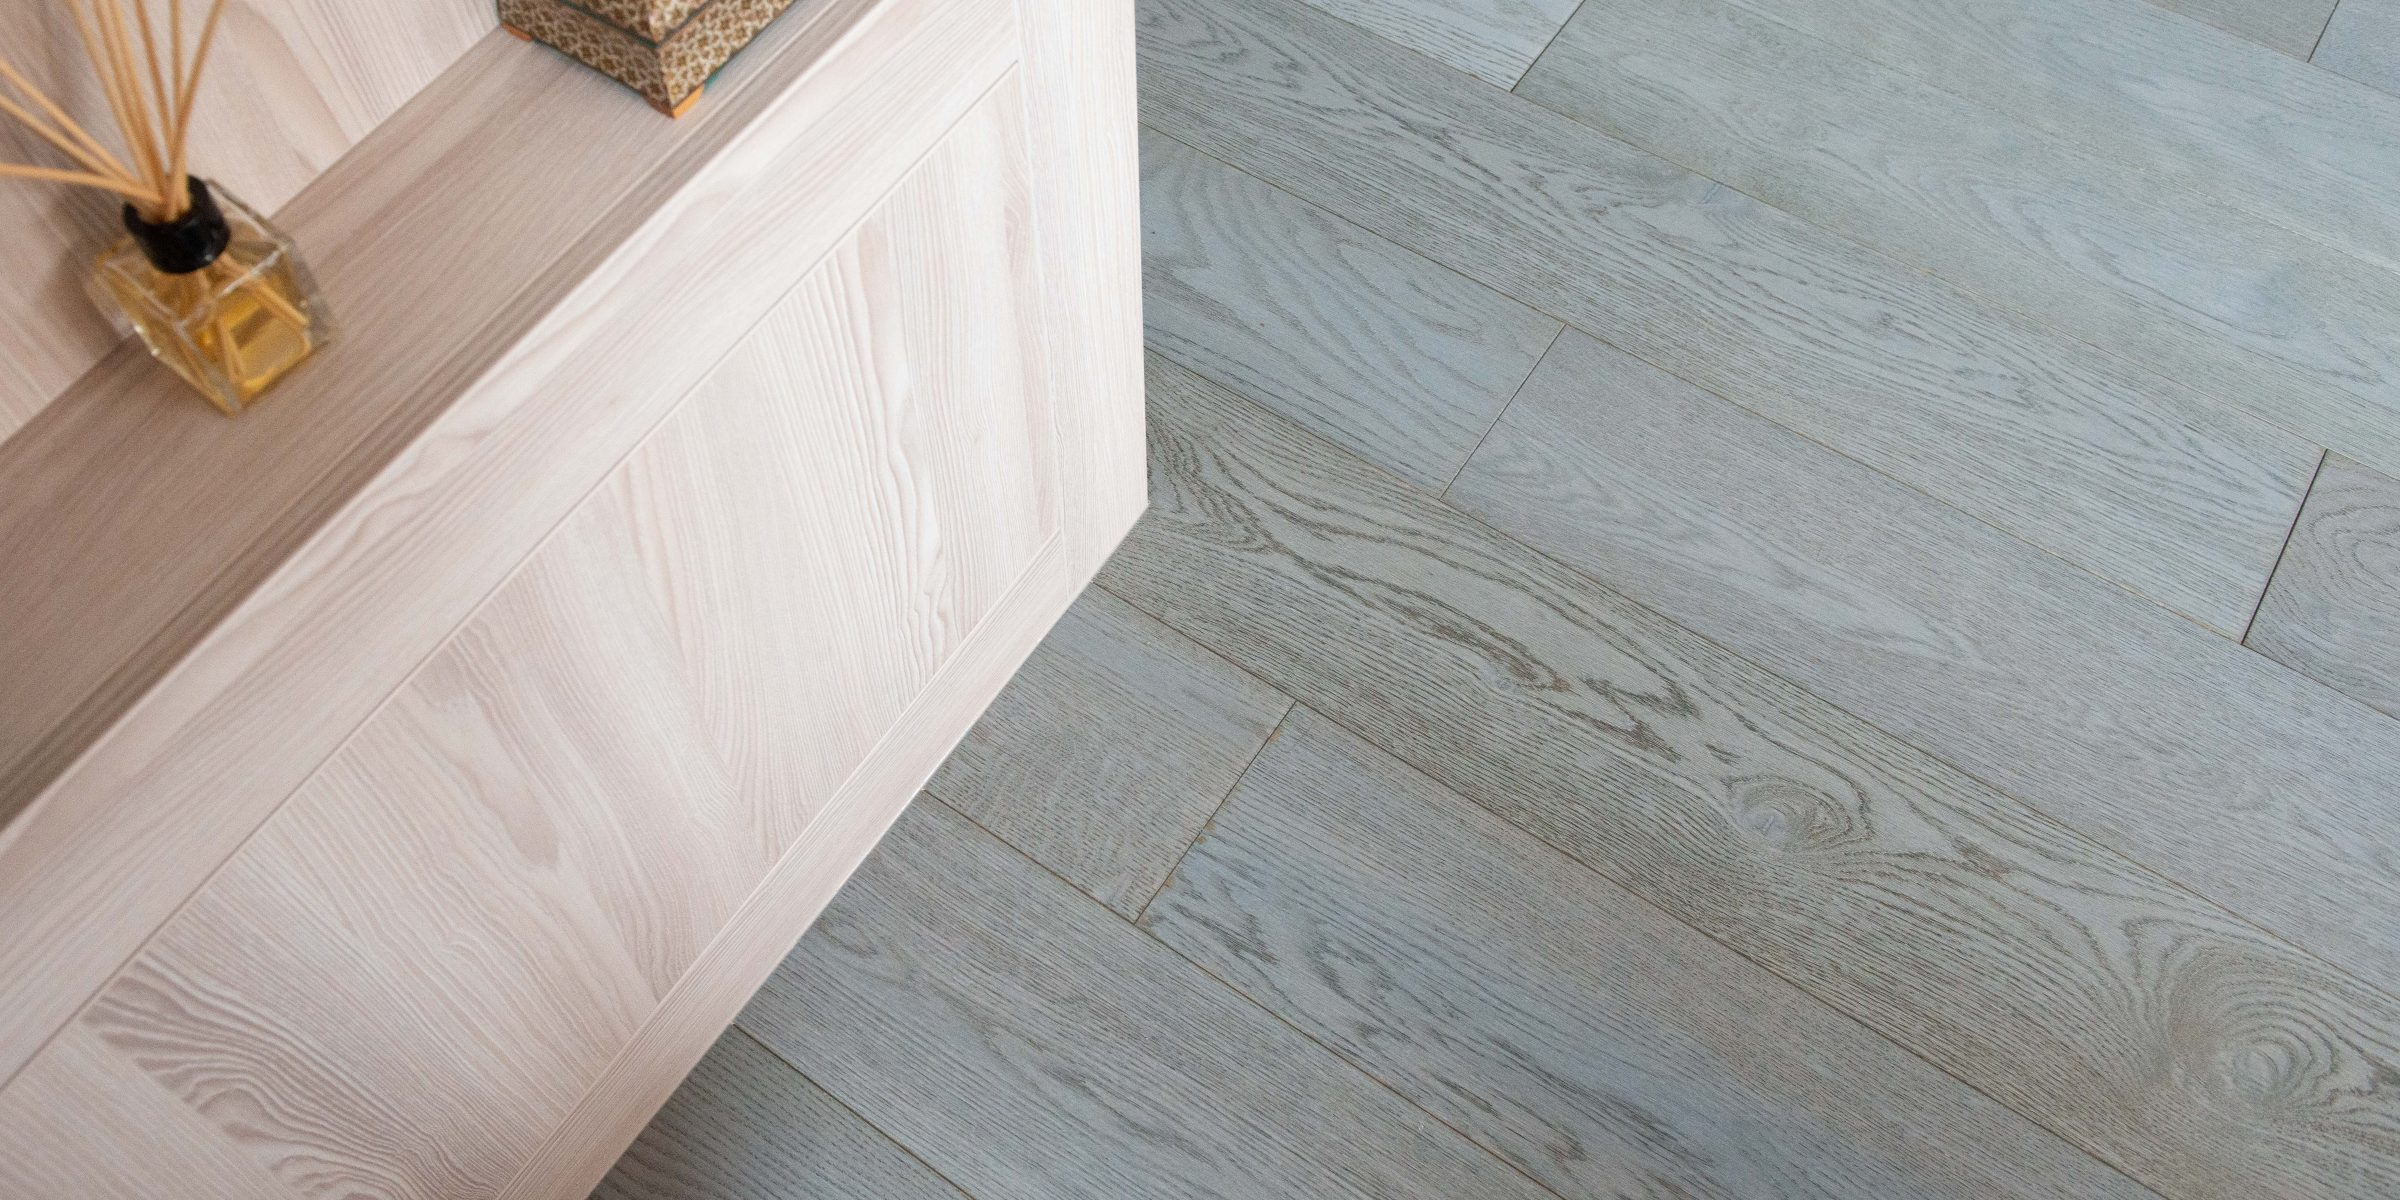 deco wood floors in pyrford home 4